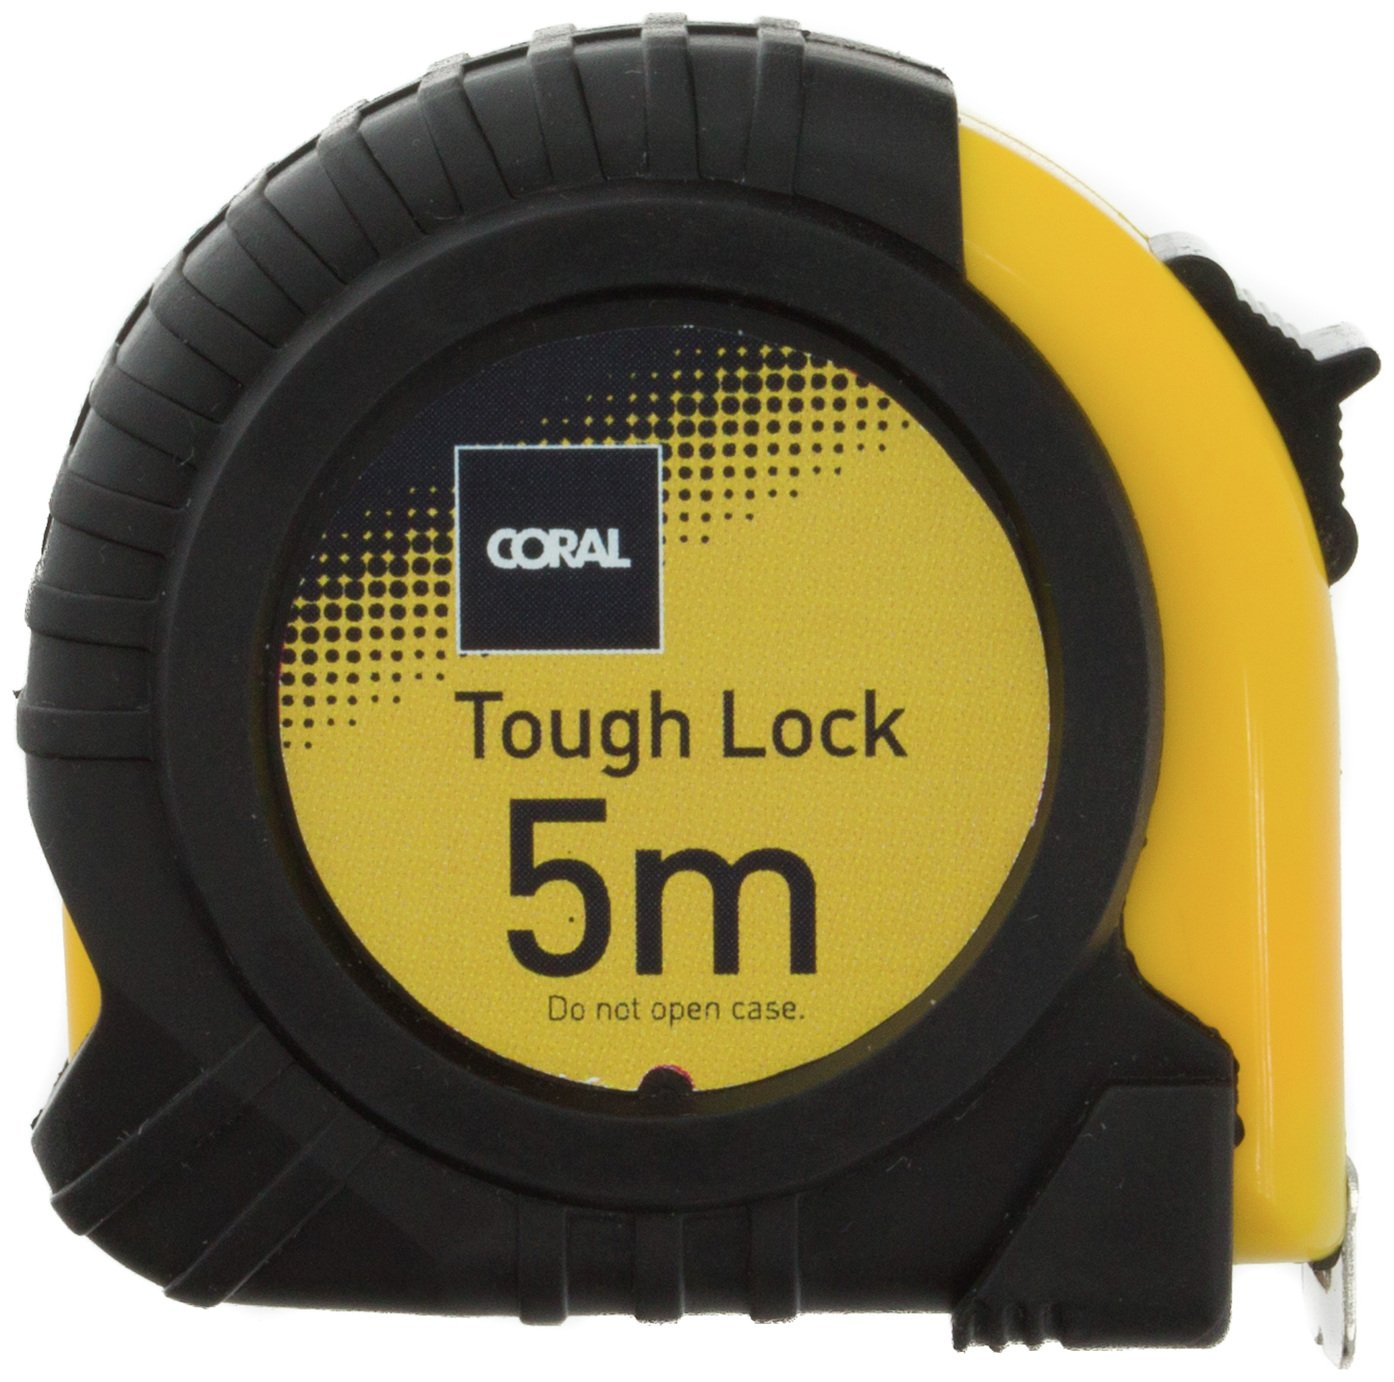 Coral Tough Lock Pocket Tape Measure - 5 Metre